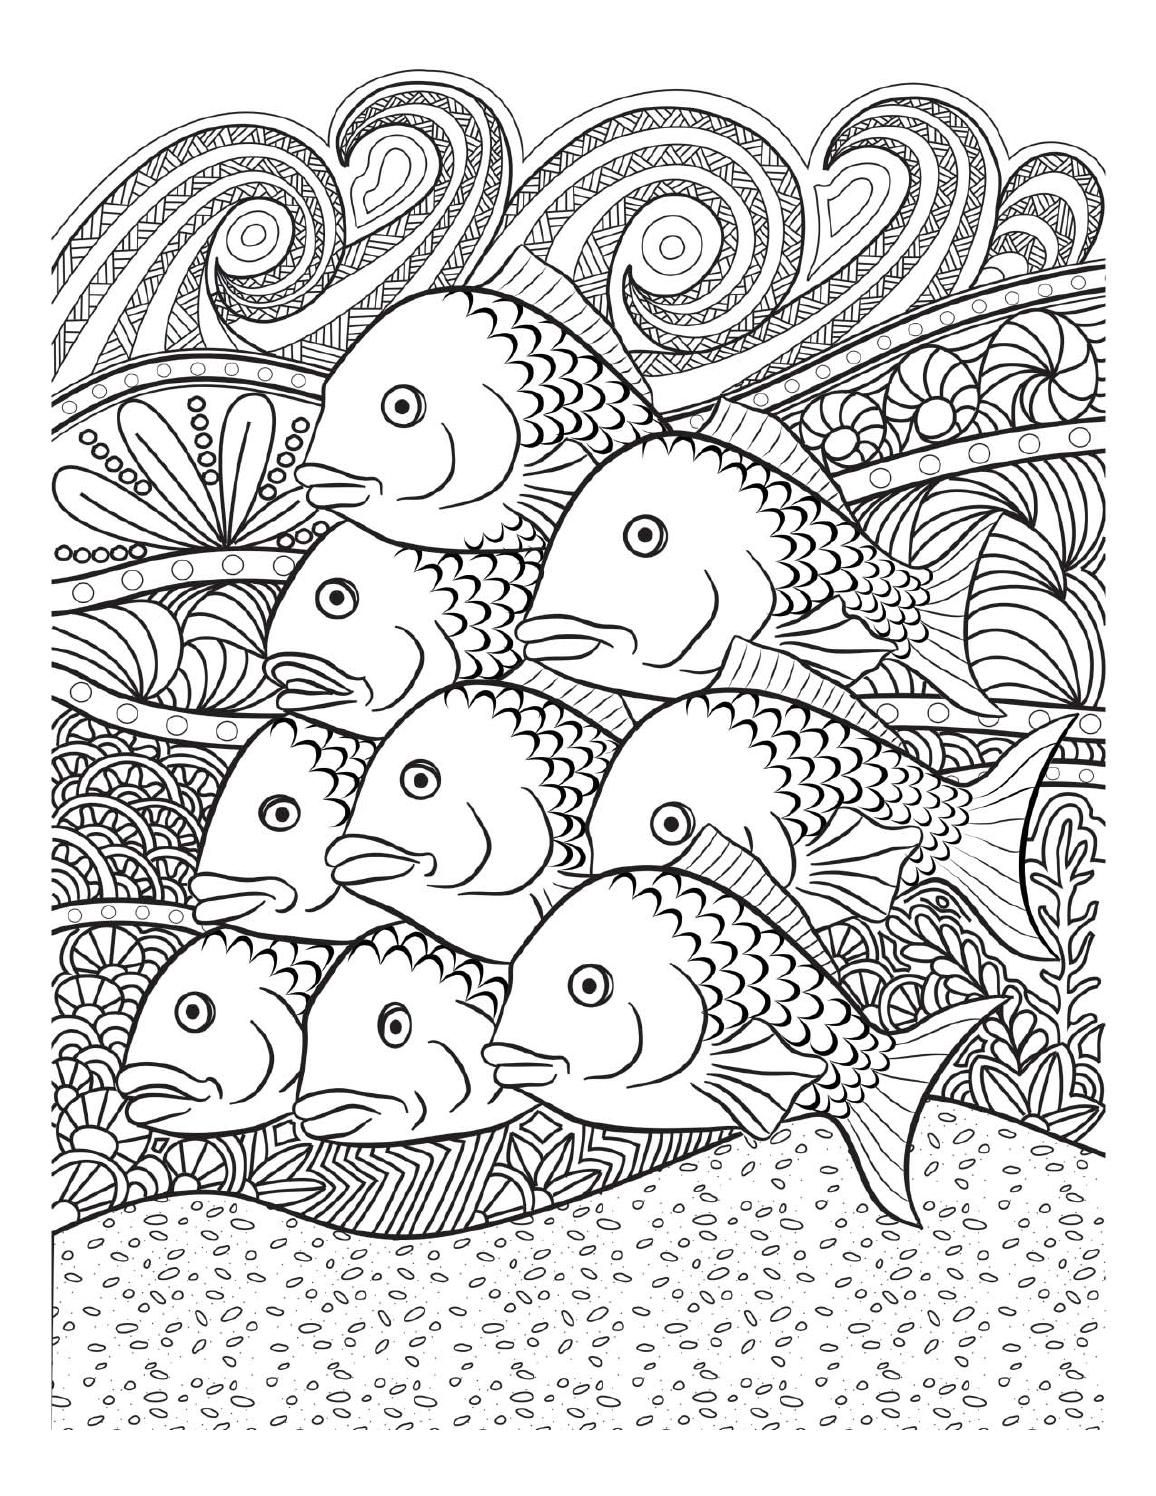 Publishers for adult coloring books - Doodles Oceana Adult Coloring Book